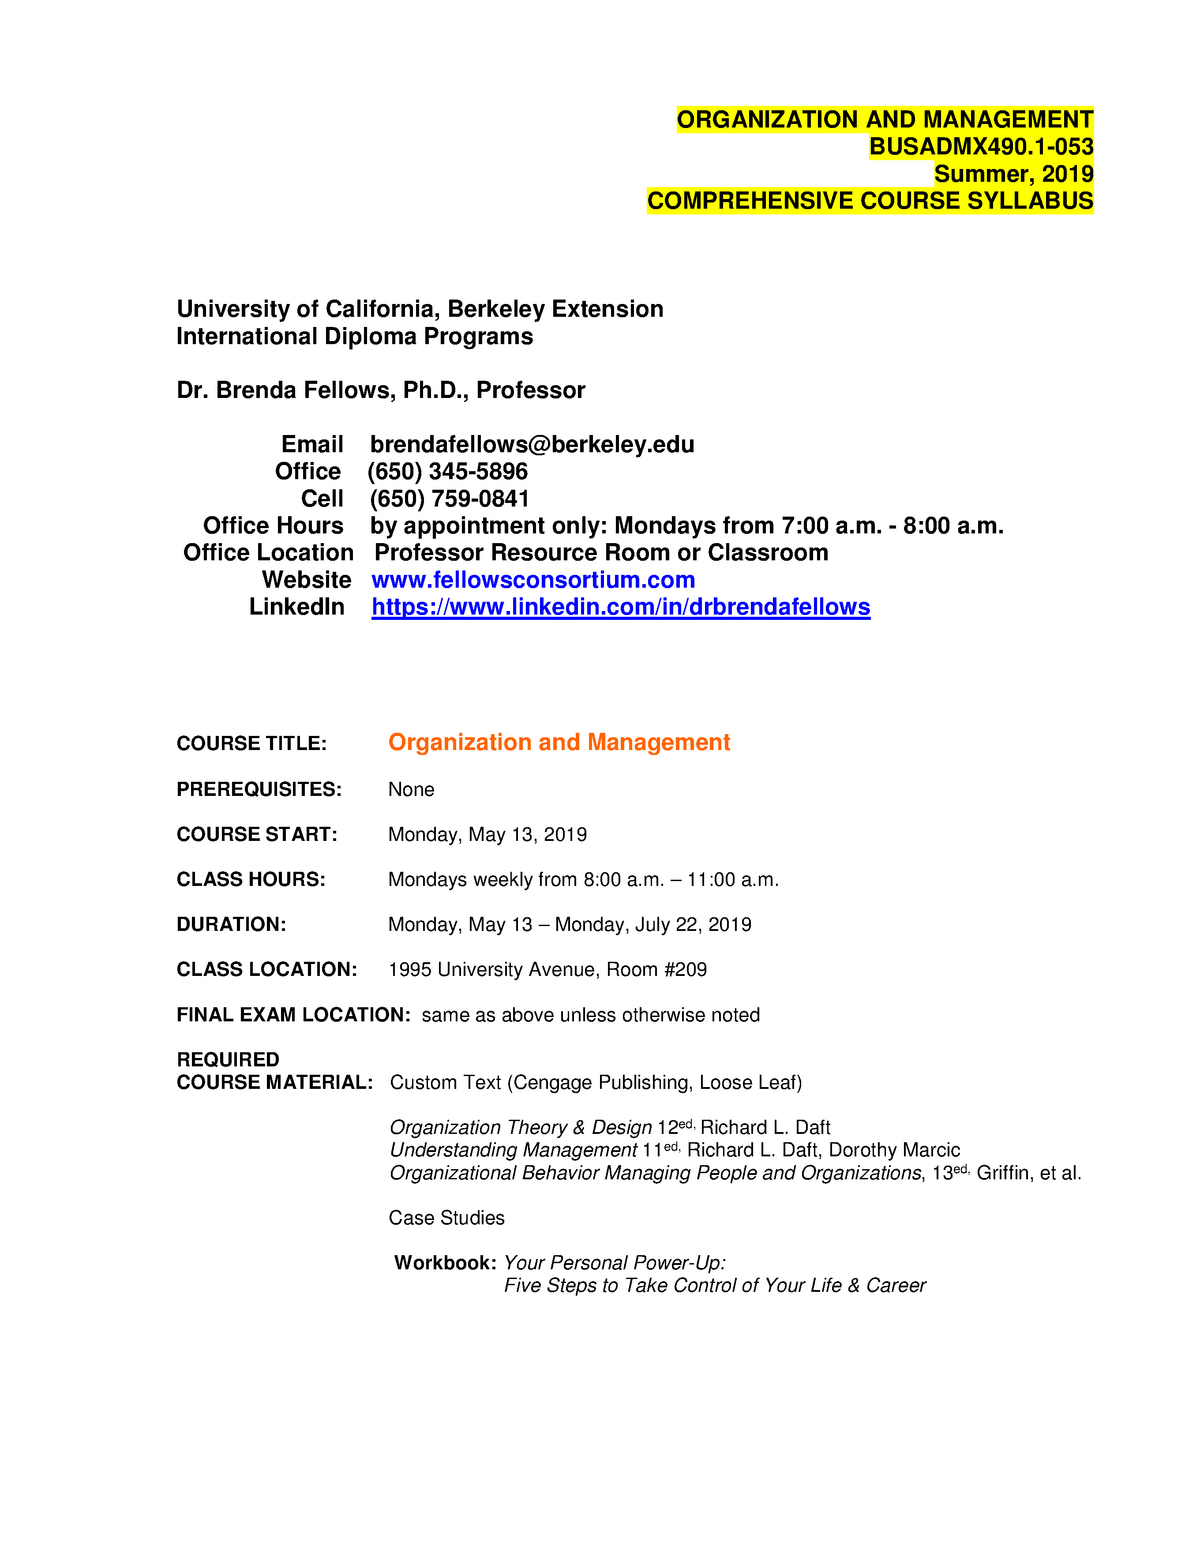 Organization AND Management Comprehensive Course Syllabus 5